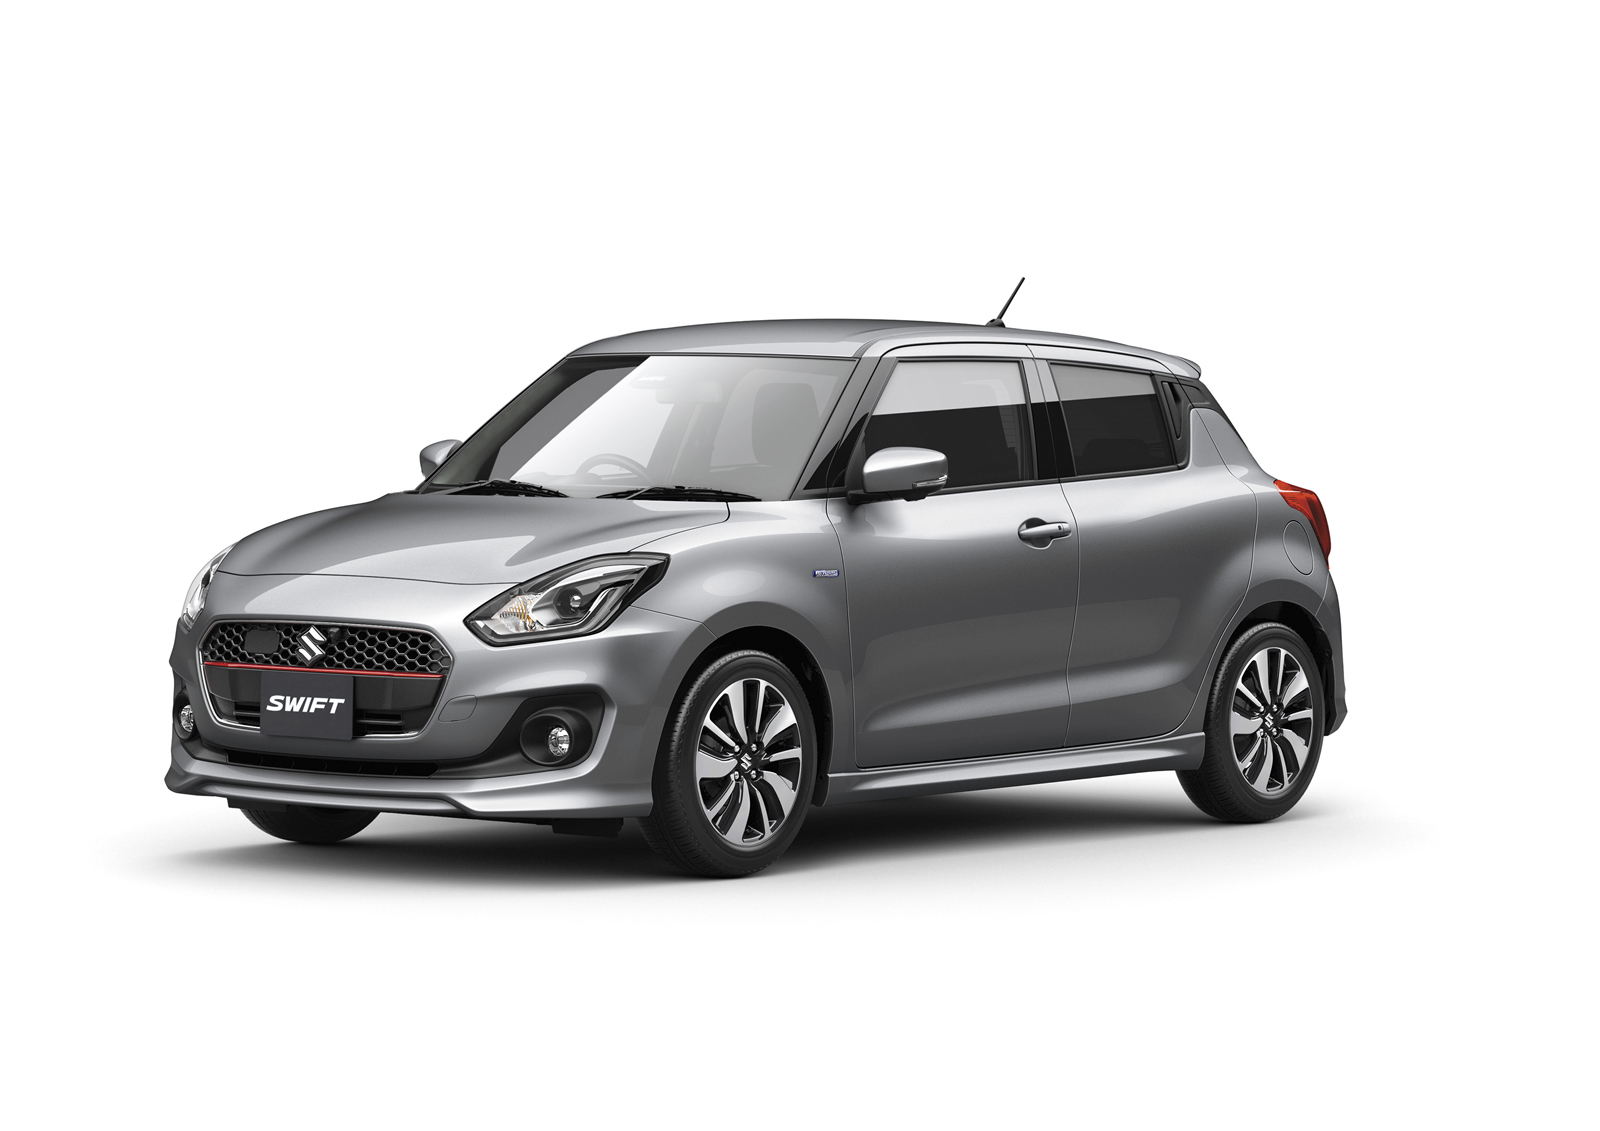 Suzuki Swift 2017 (15)